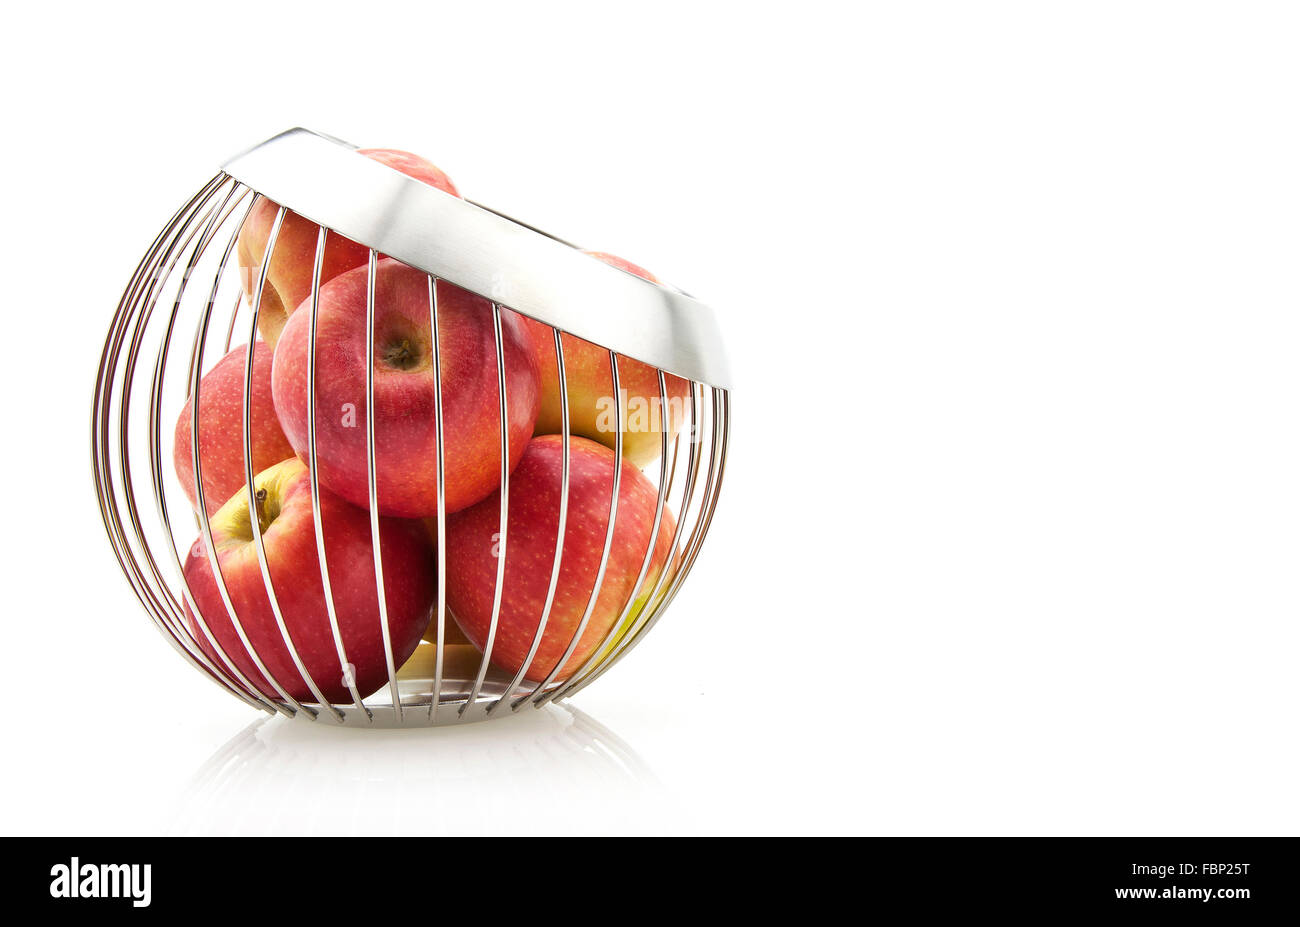 Fresh ripe red apples in Stainless Steel bowl on white background. - Stock Image